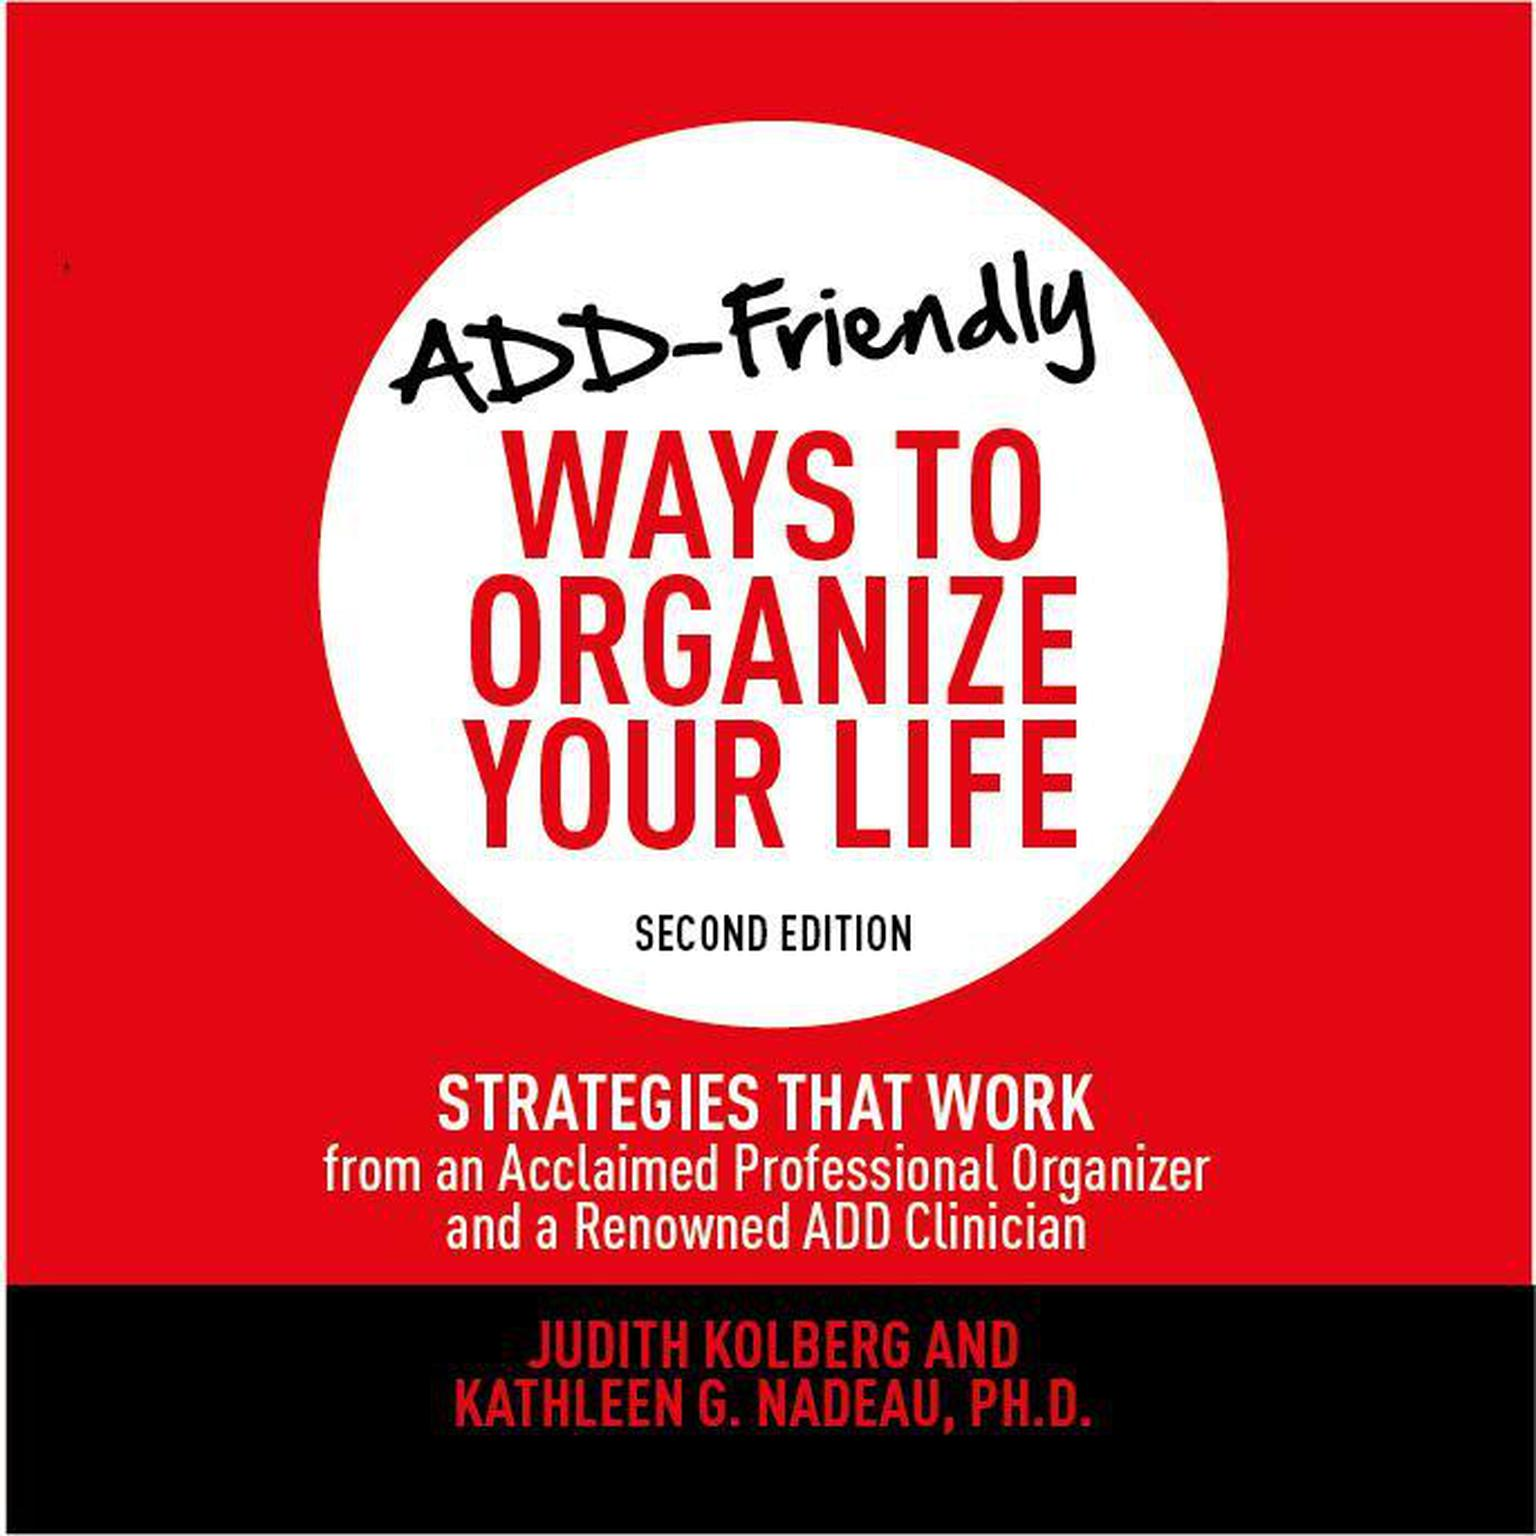 Printable ADD-Friendly Ways to Organize Your Life Second Edition: Strategies That Work from an Acclaimed Professional Organizer and a Renowned ADD Clinician Audiobook Cover Art